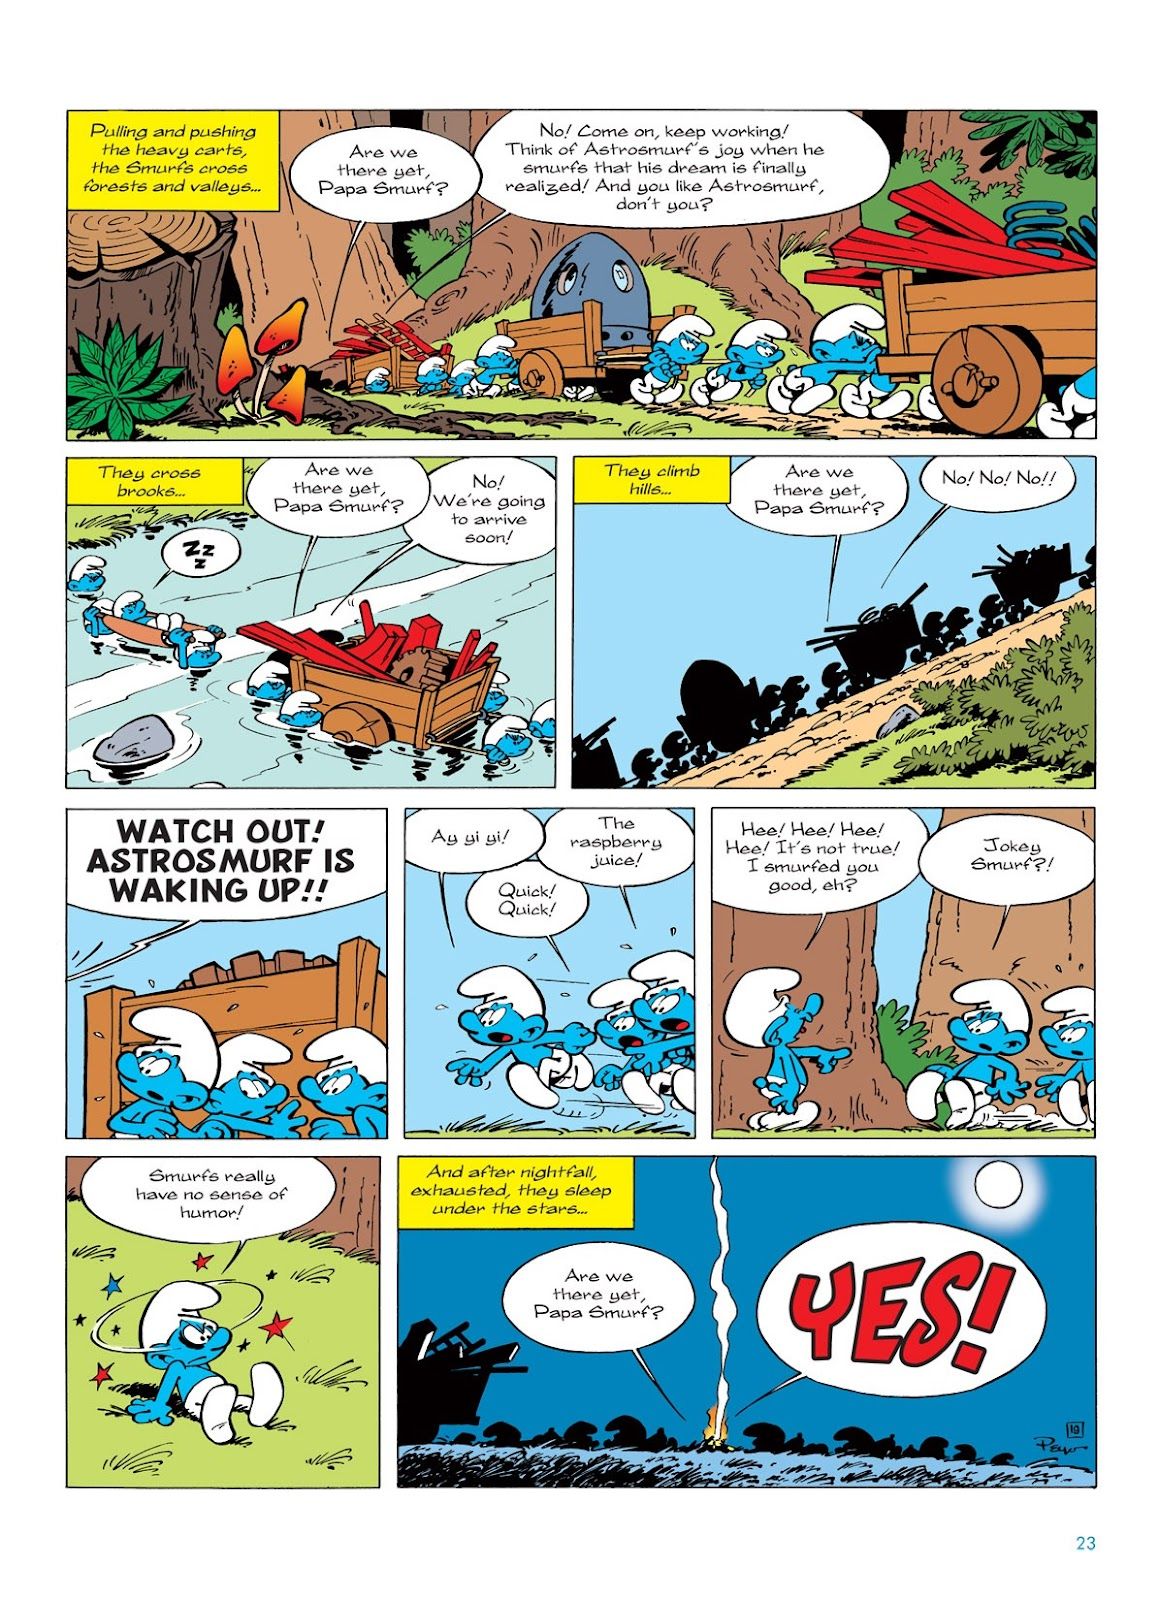 Read online The Smurfs comic -  Issue #7 - 23